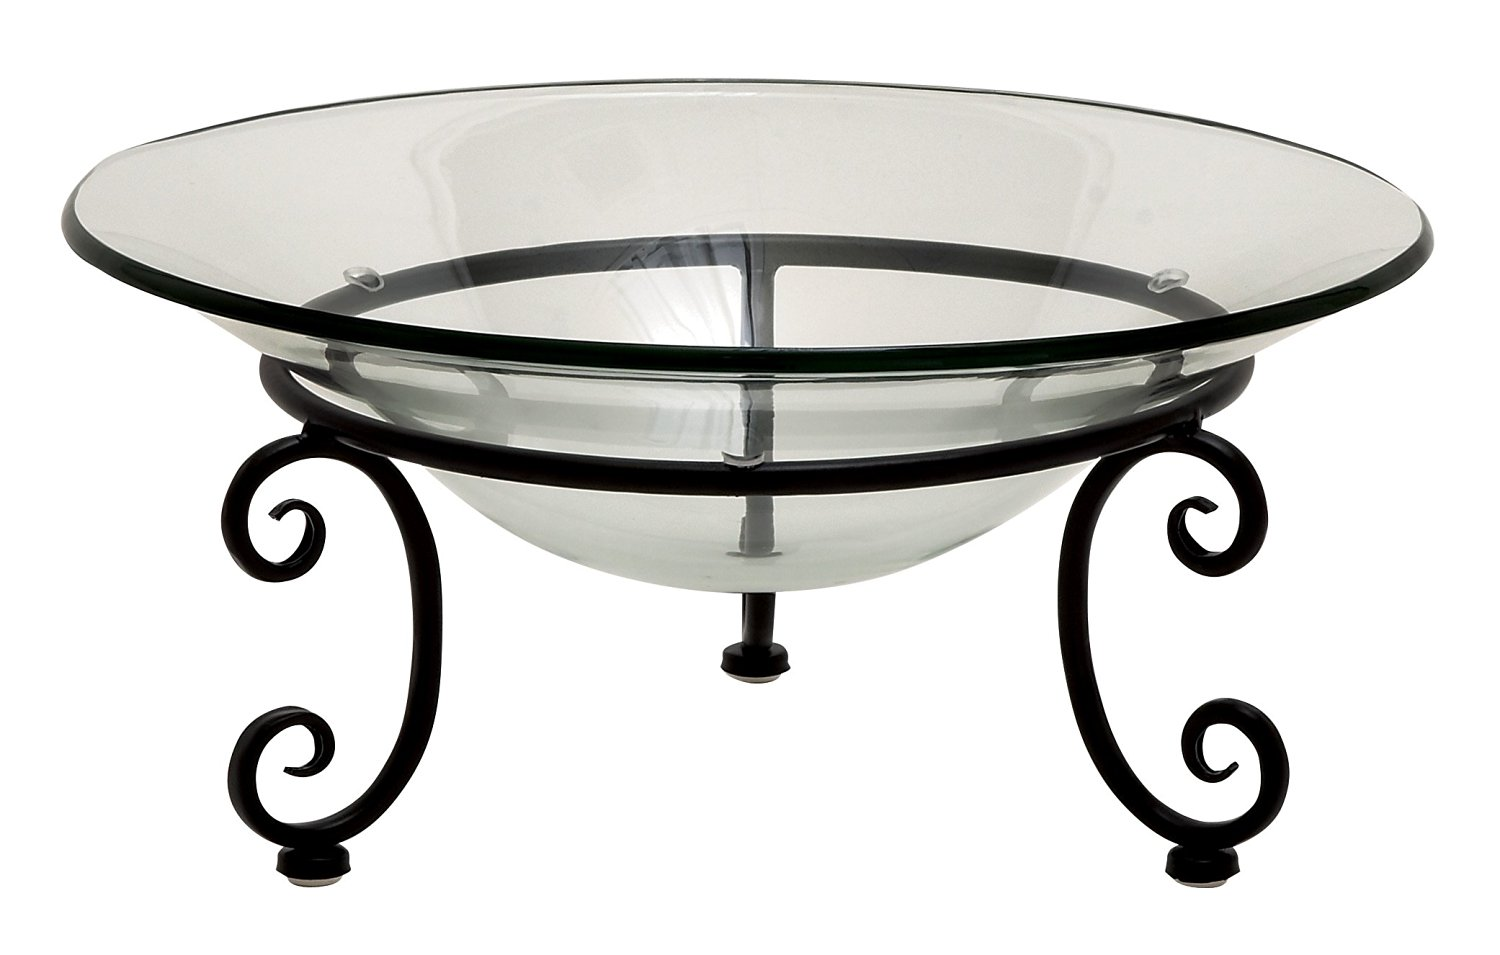 Plutus Brands Amazing Styled Metal Glass Bowl